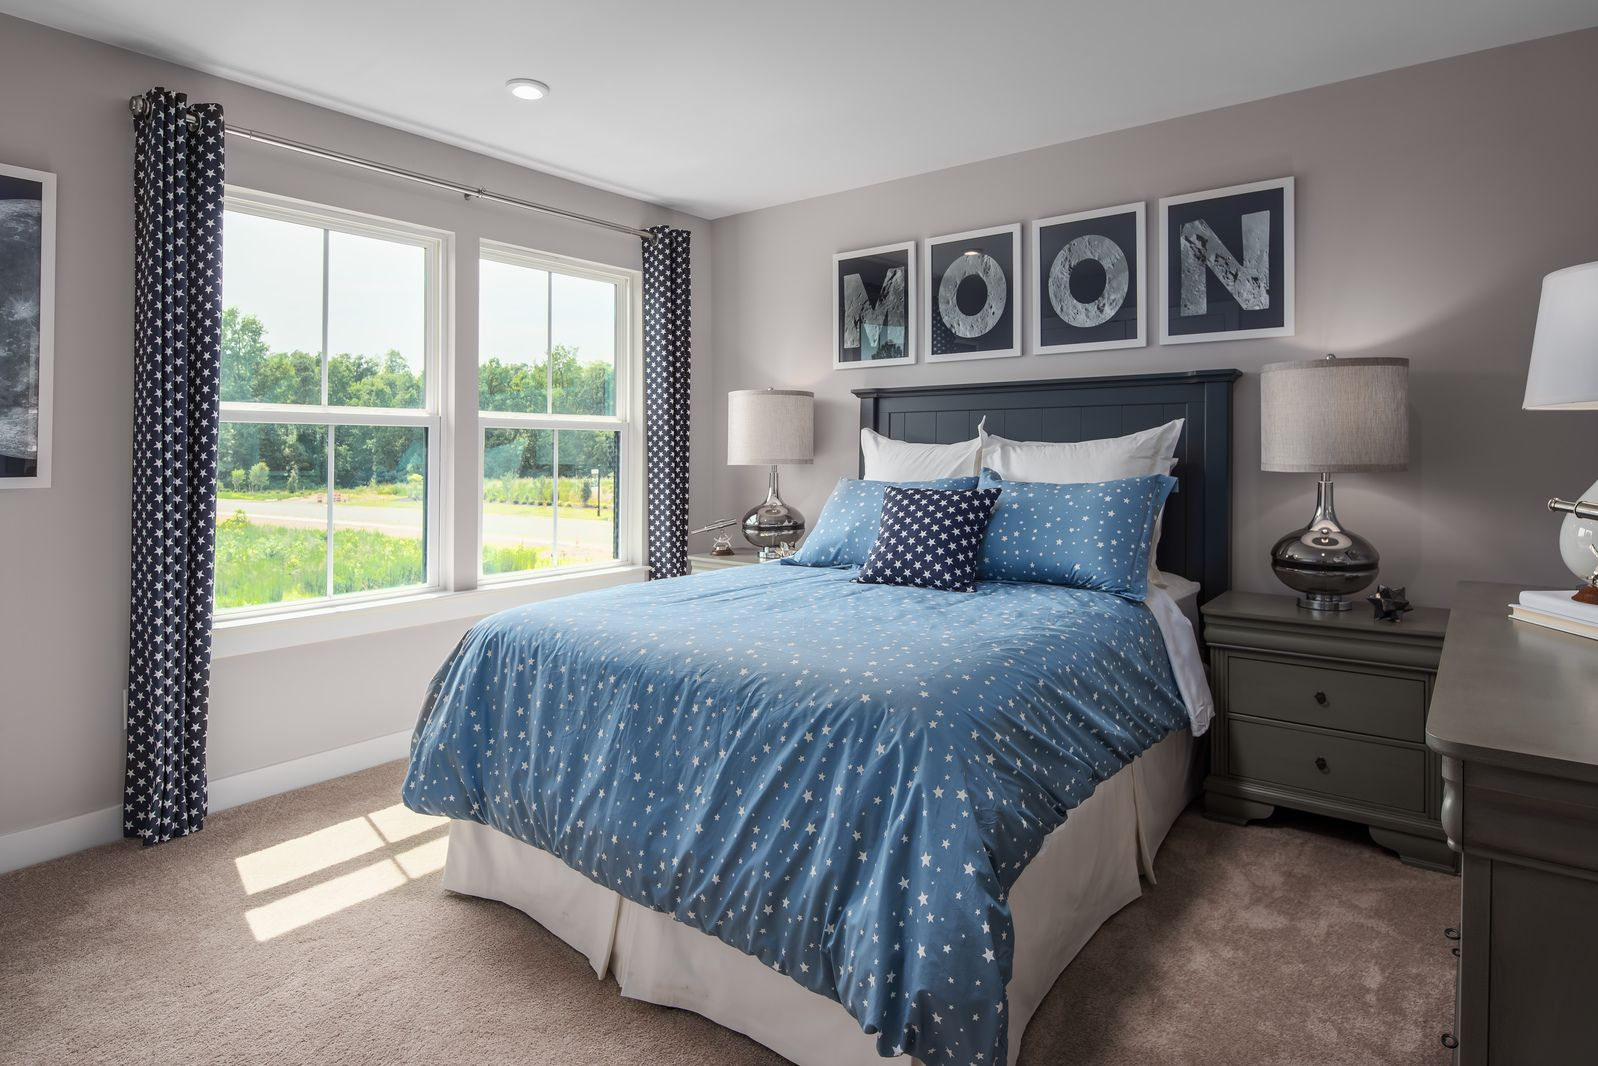 Bedroom featured in the Lehigh By Ryan Homes in York, PA